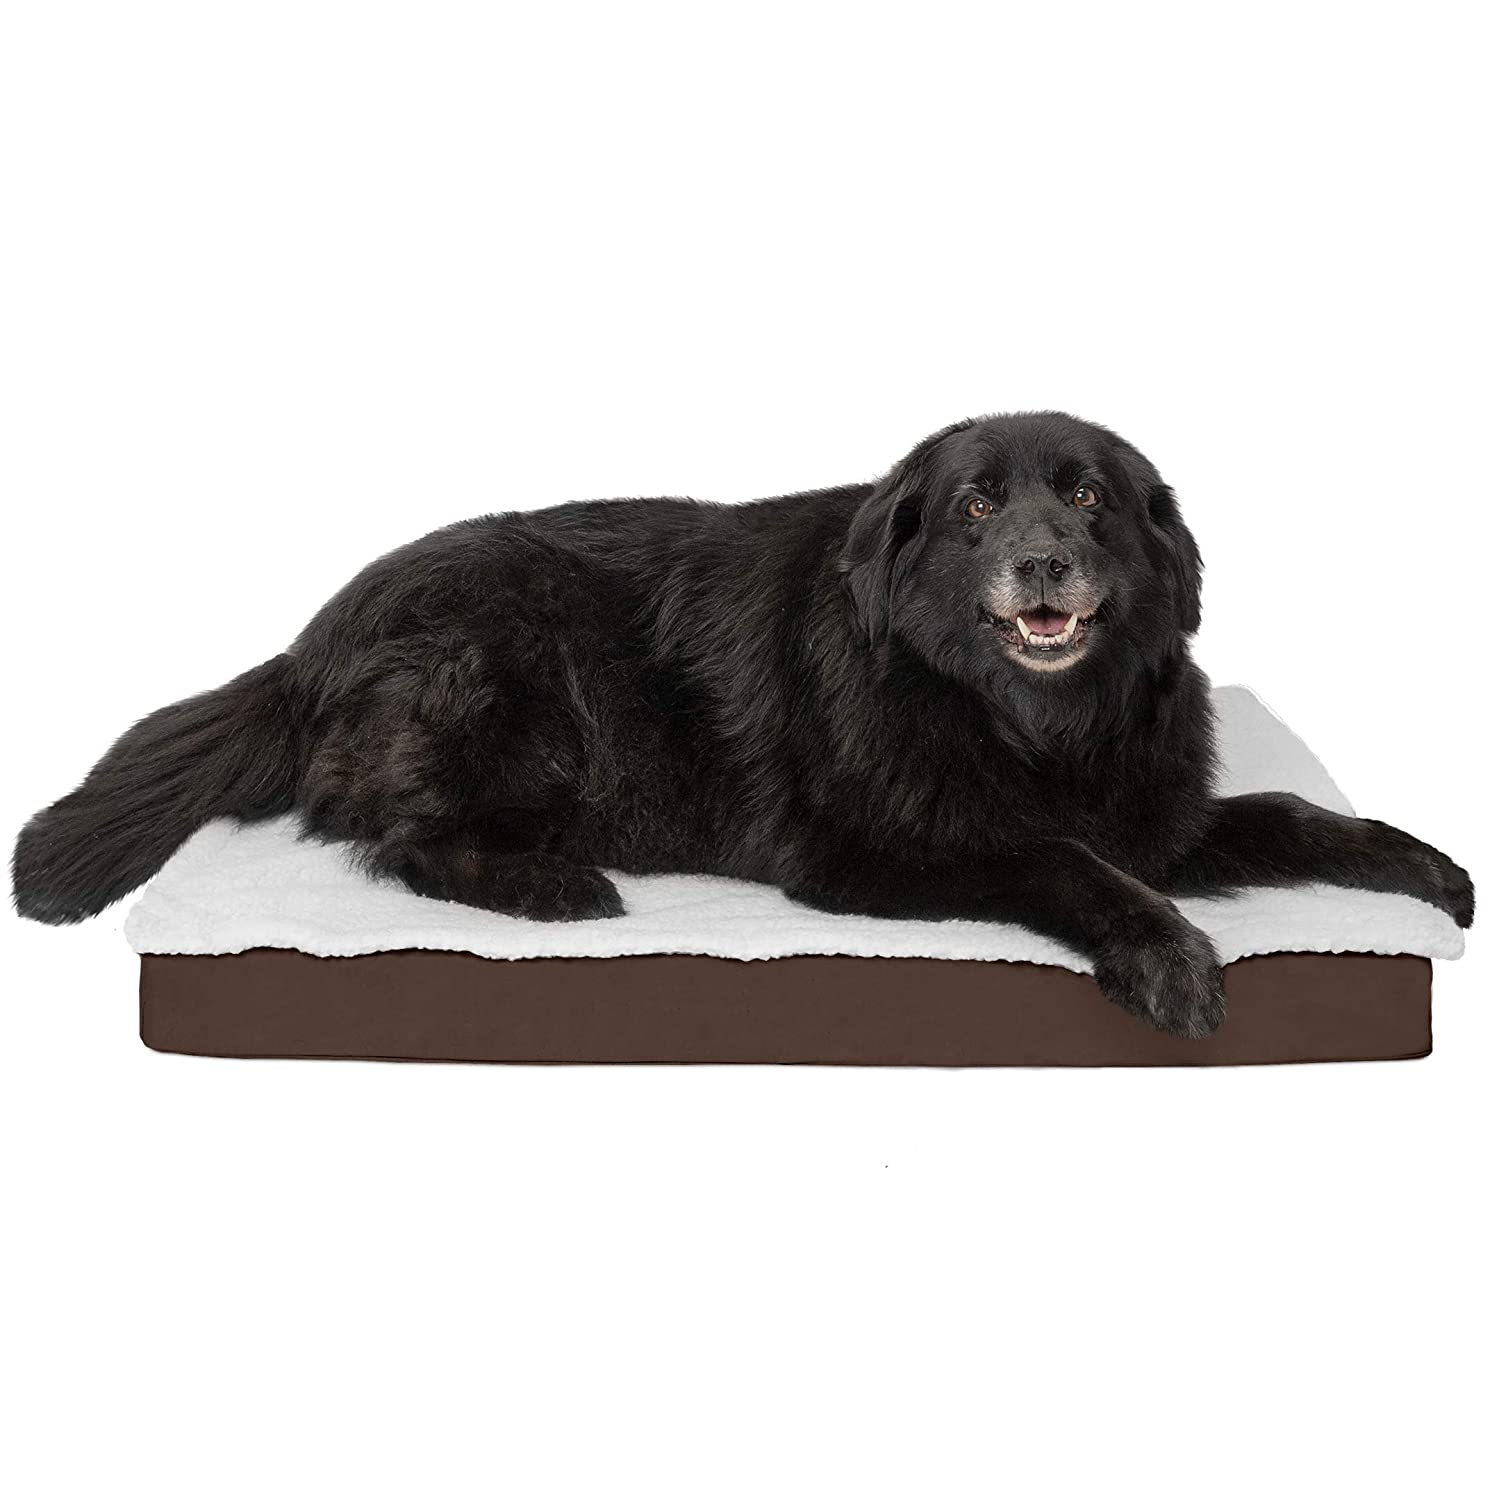 FurHaven Pet Dog Bed   Orthopedic Congreenible Pet Bed Mattress for Dogs & Cats, Espresso, Large